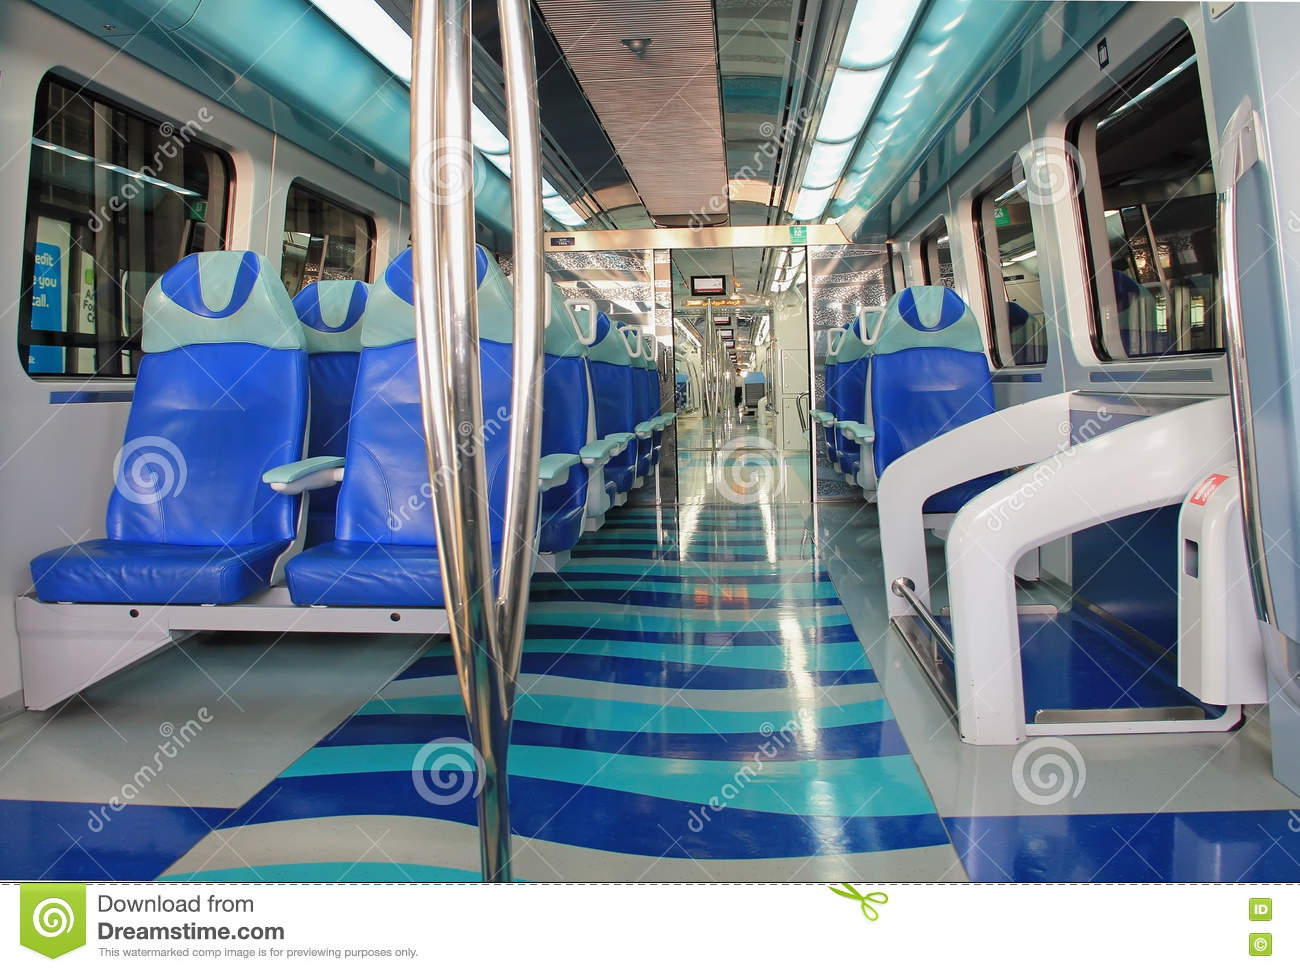 subway train in dubai subway trains inside the car interior tr stock photo image of. Black Bedroom Furniture Sets. Home Design Ideas